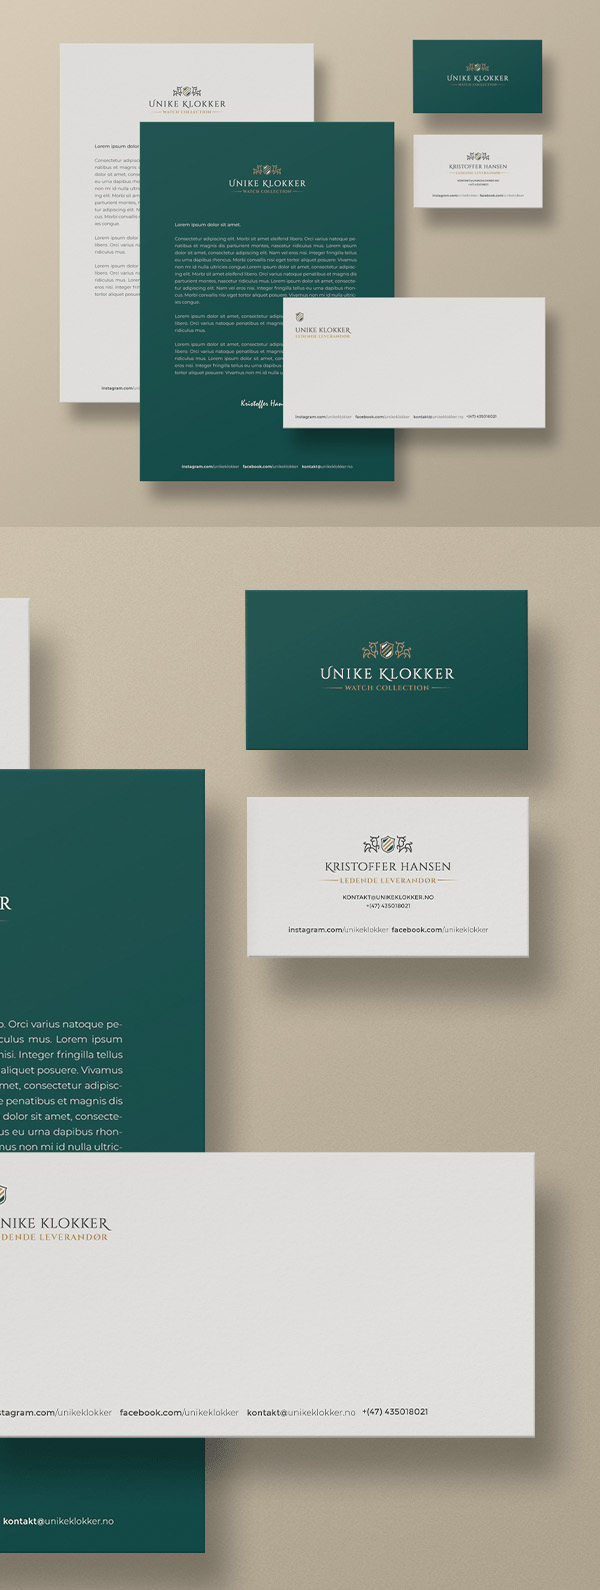 Free Download Stationery Identification branding mockup